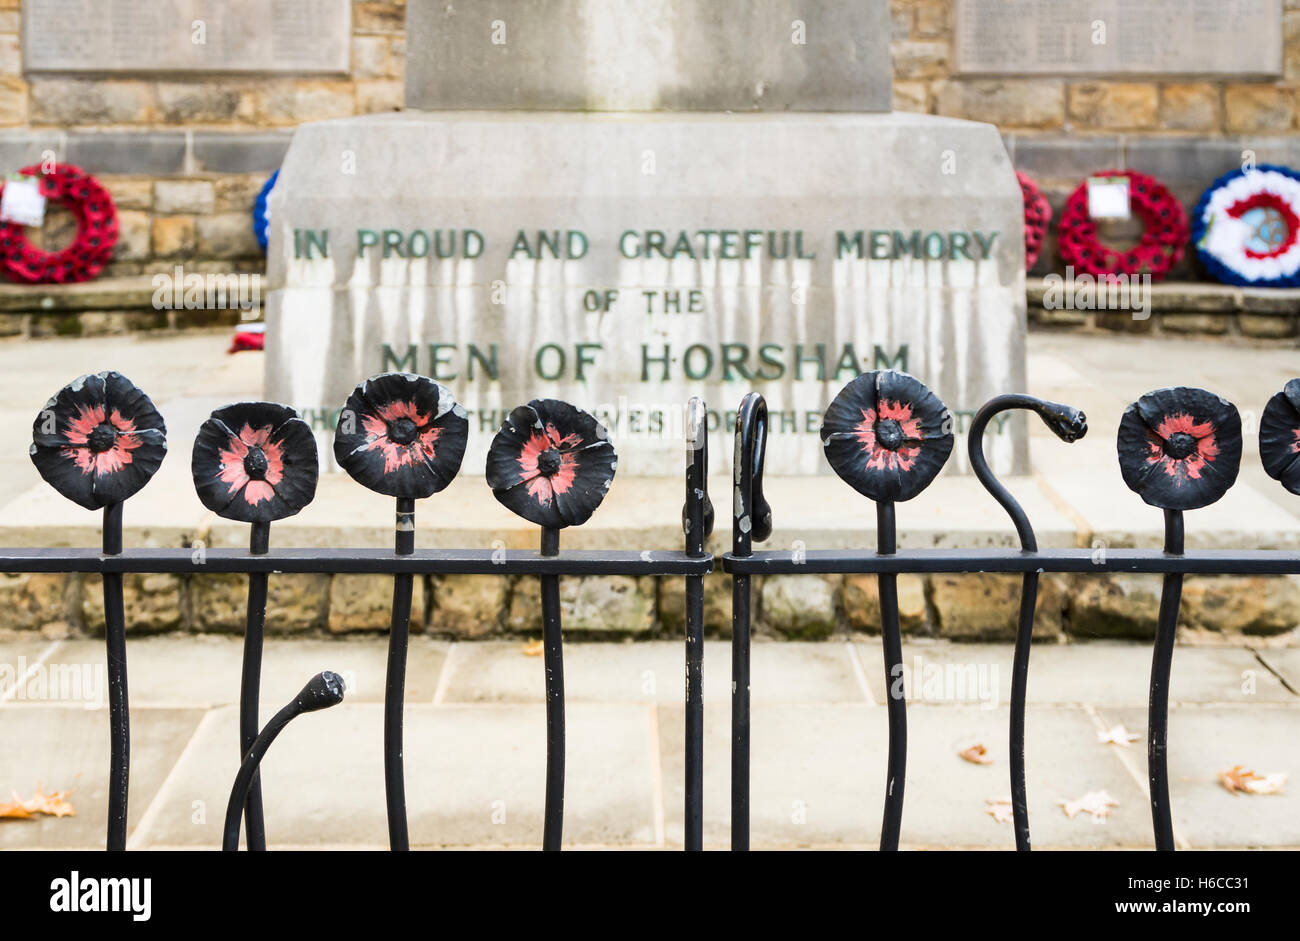 Decorative railings with wrought iron poppies surrounding the war memorial in Horsham, West Sussex, UK with poppy - Stock Image